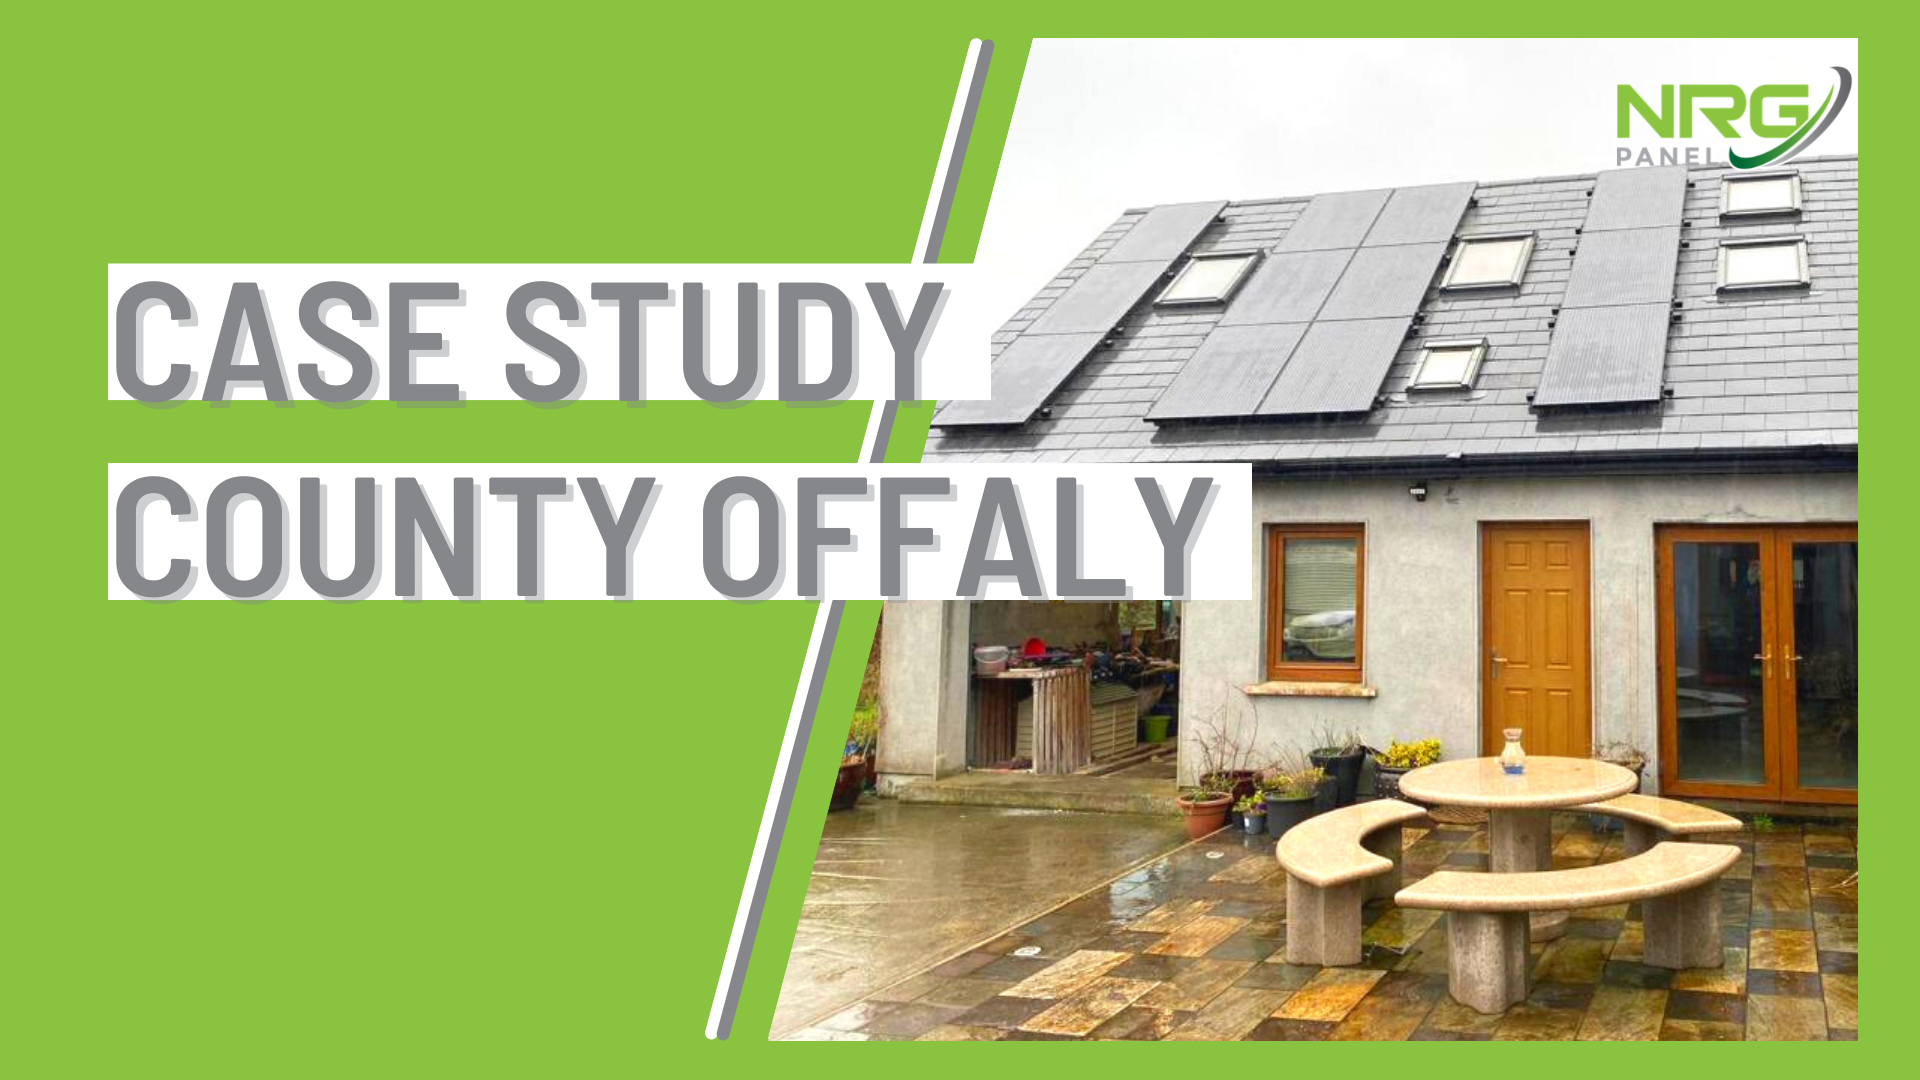 Case Study - Solar Panel Install Co. Offaly - NRG Panel - #2